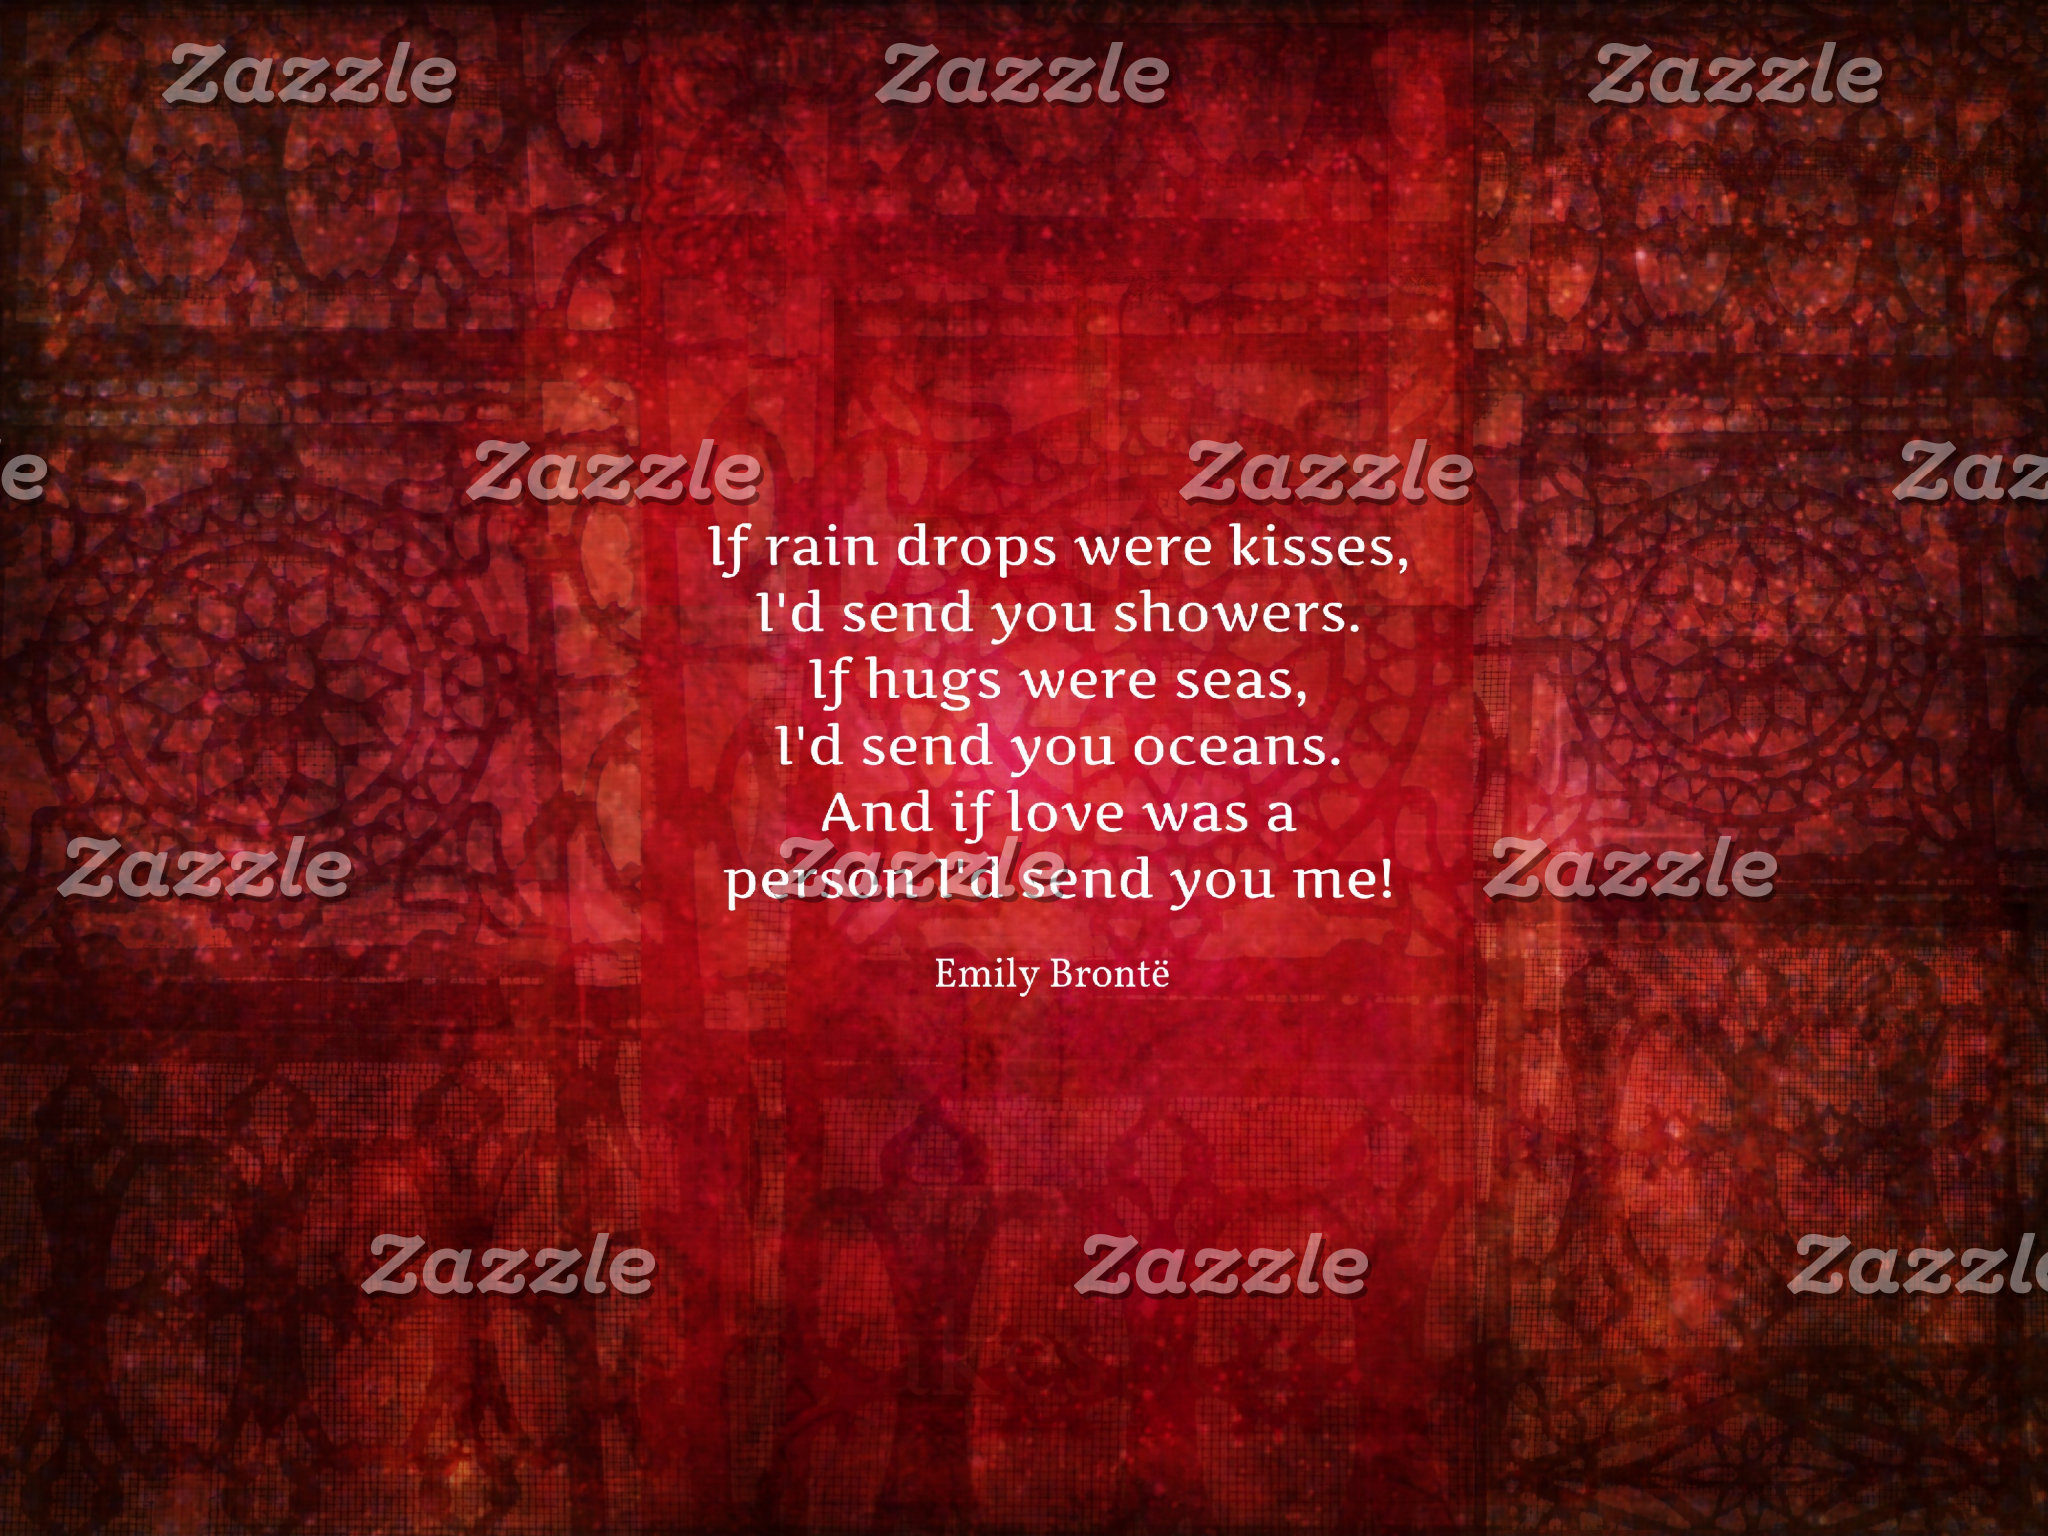 If rain drops were kisses, I'd send you showers